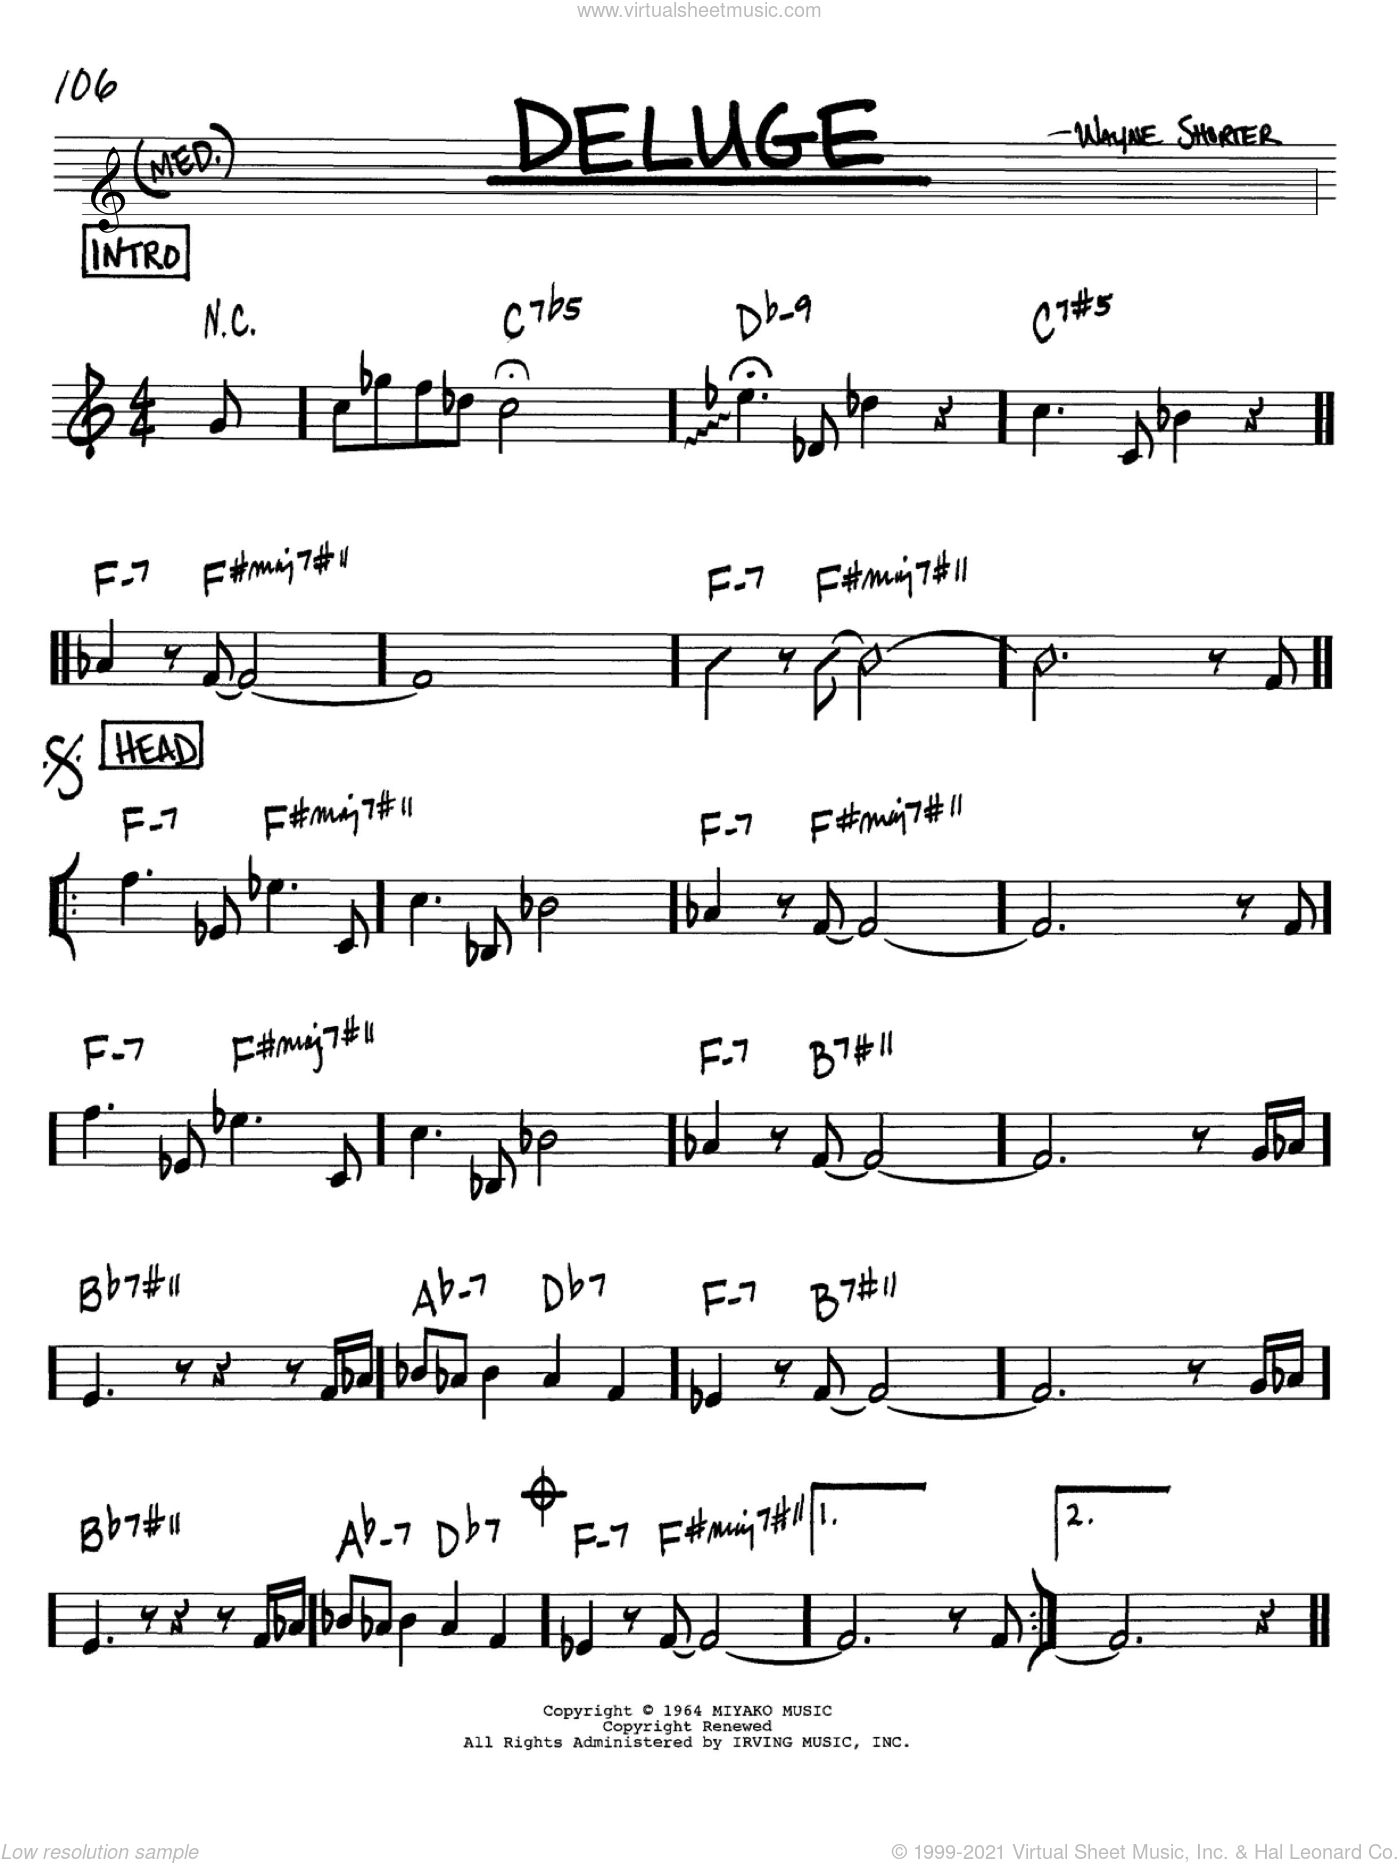 Deluge sheet music for voice and other instruments (Bb) by Wayne Shorter